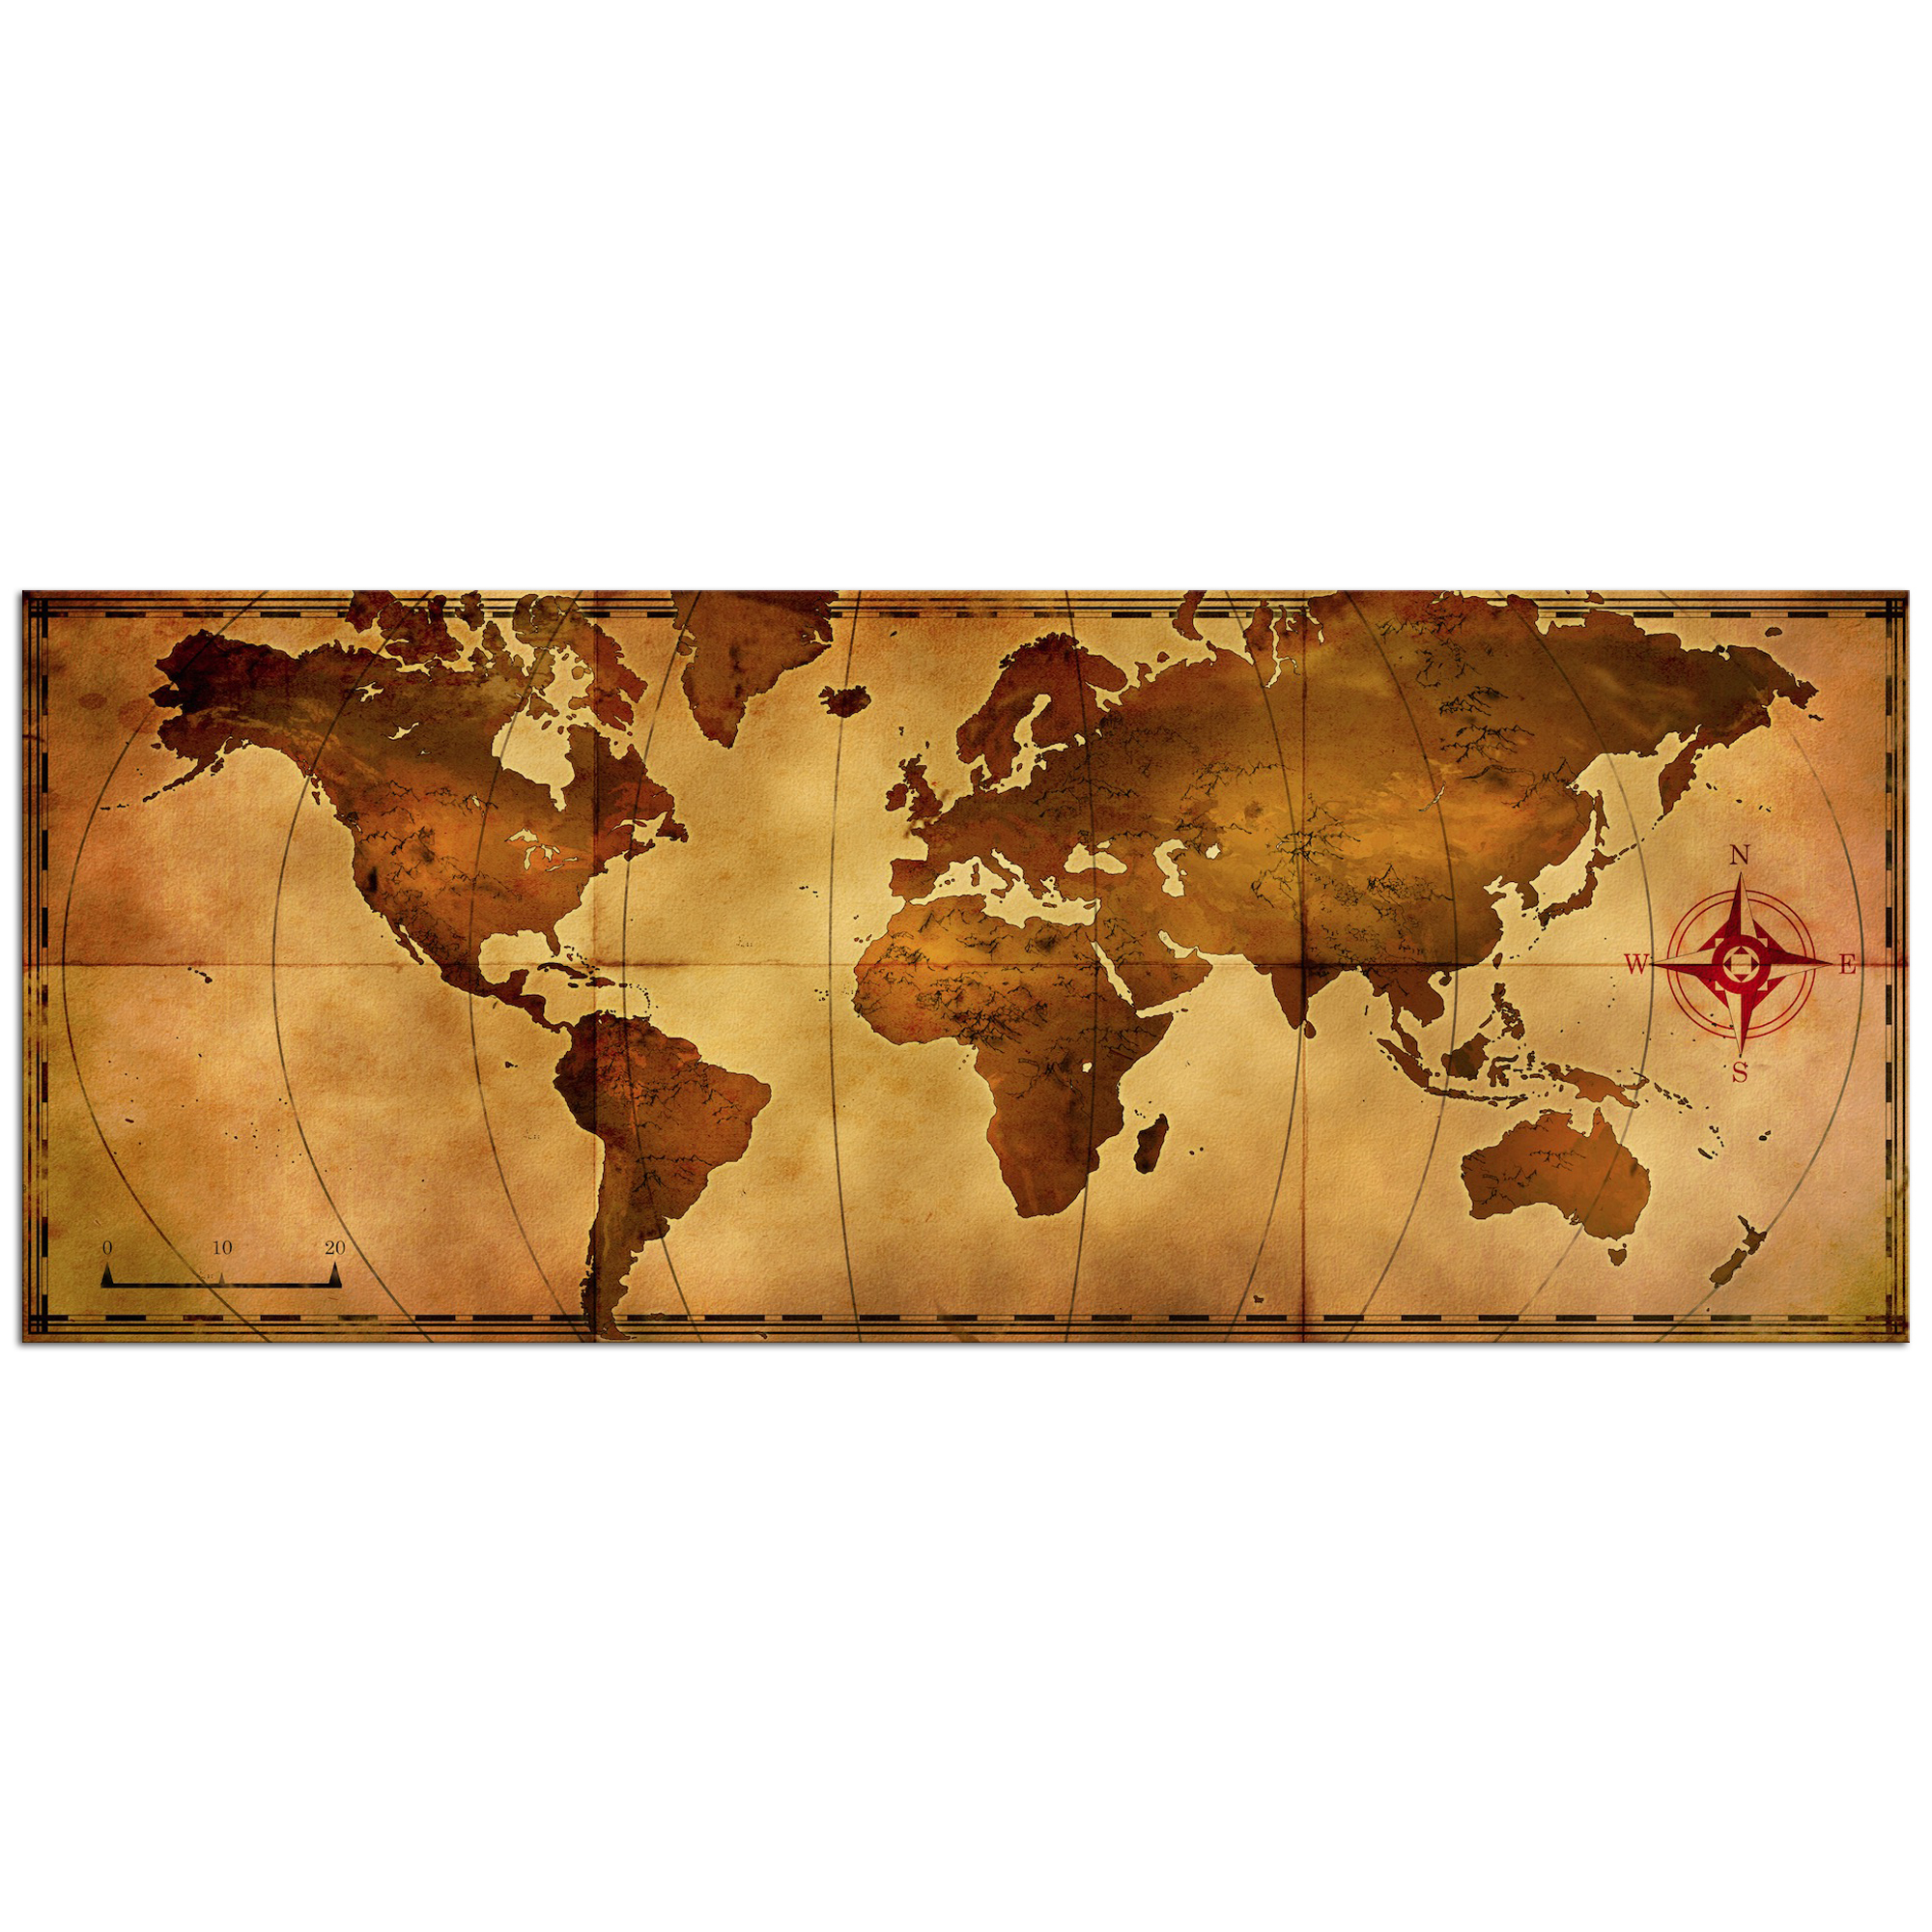 Metal Art Studio Map Wall Vanityold Map Vanity Aged Antique Metal Travel Artwork Hist World